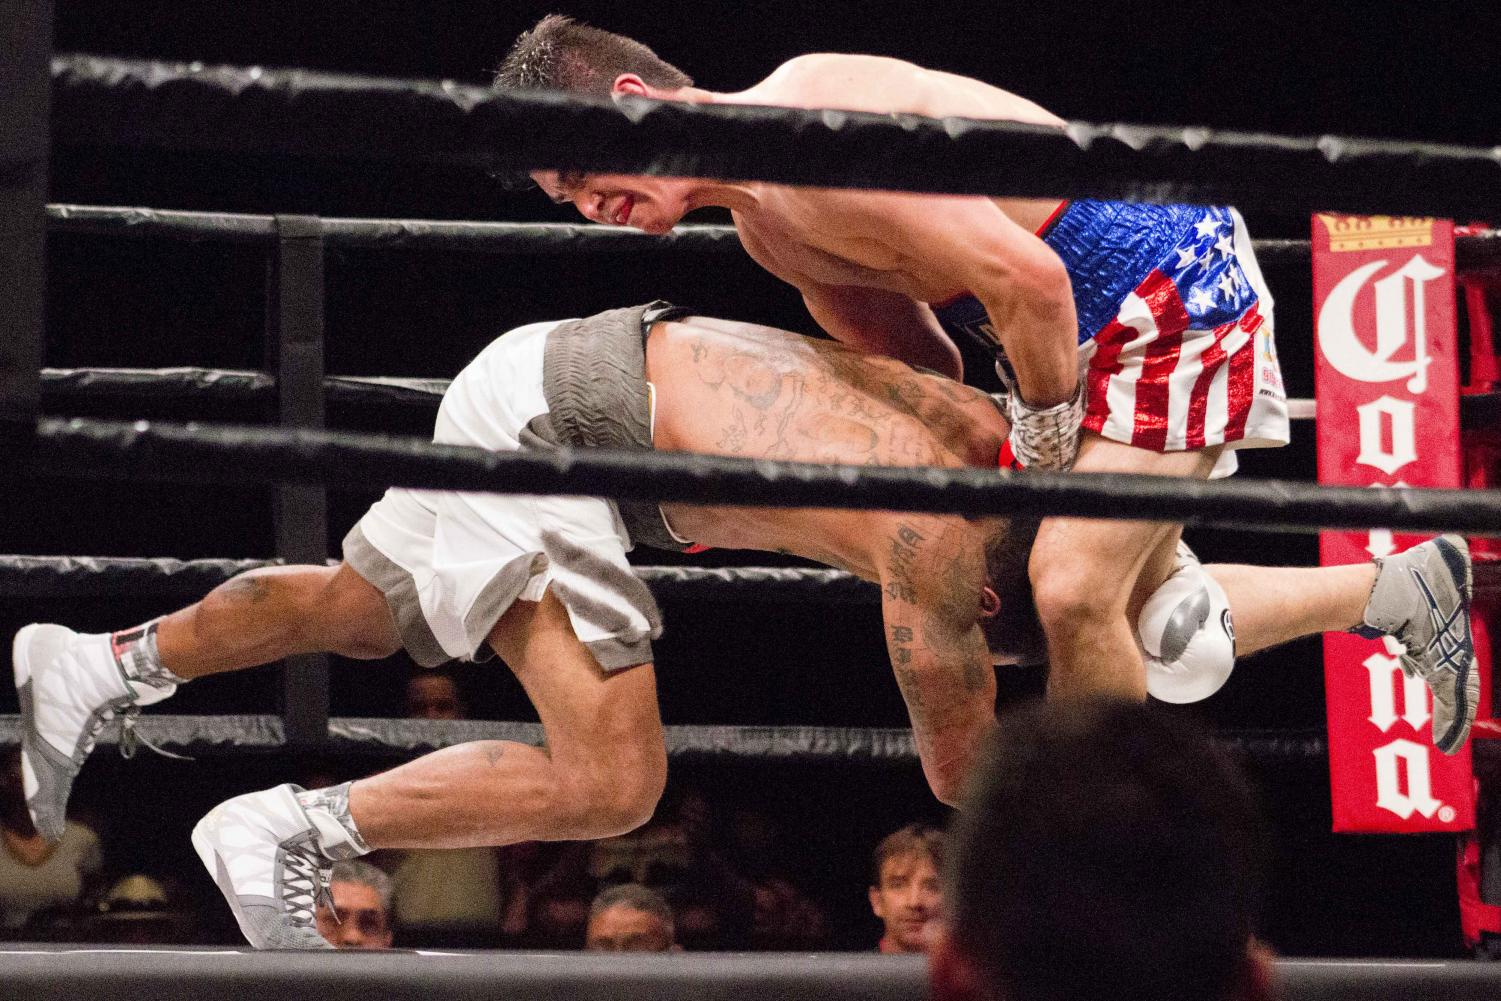 Anthony Dirrell dives into Abraham Han at Premiere Boxing Champions on Saturday, April 28 at the Don Haskins Center.